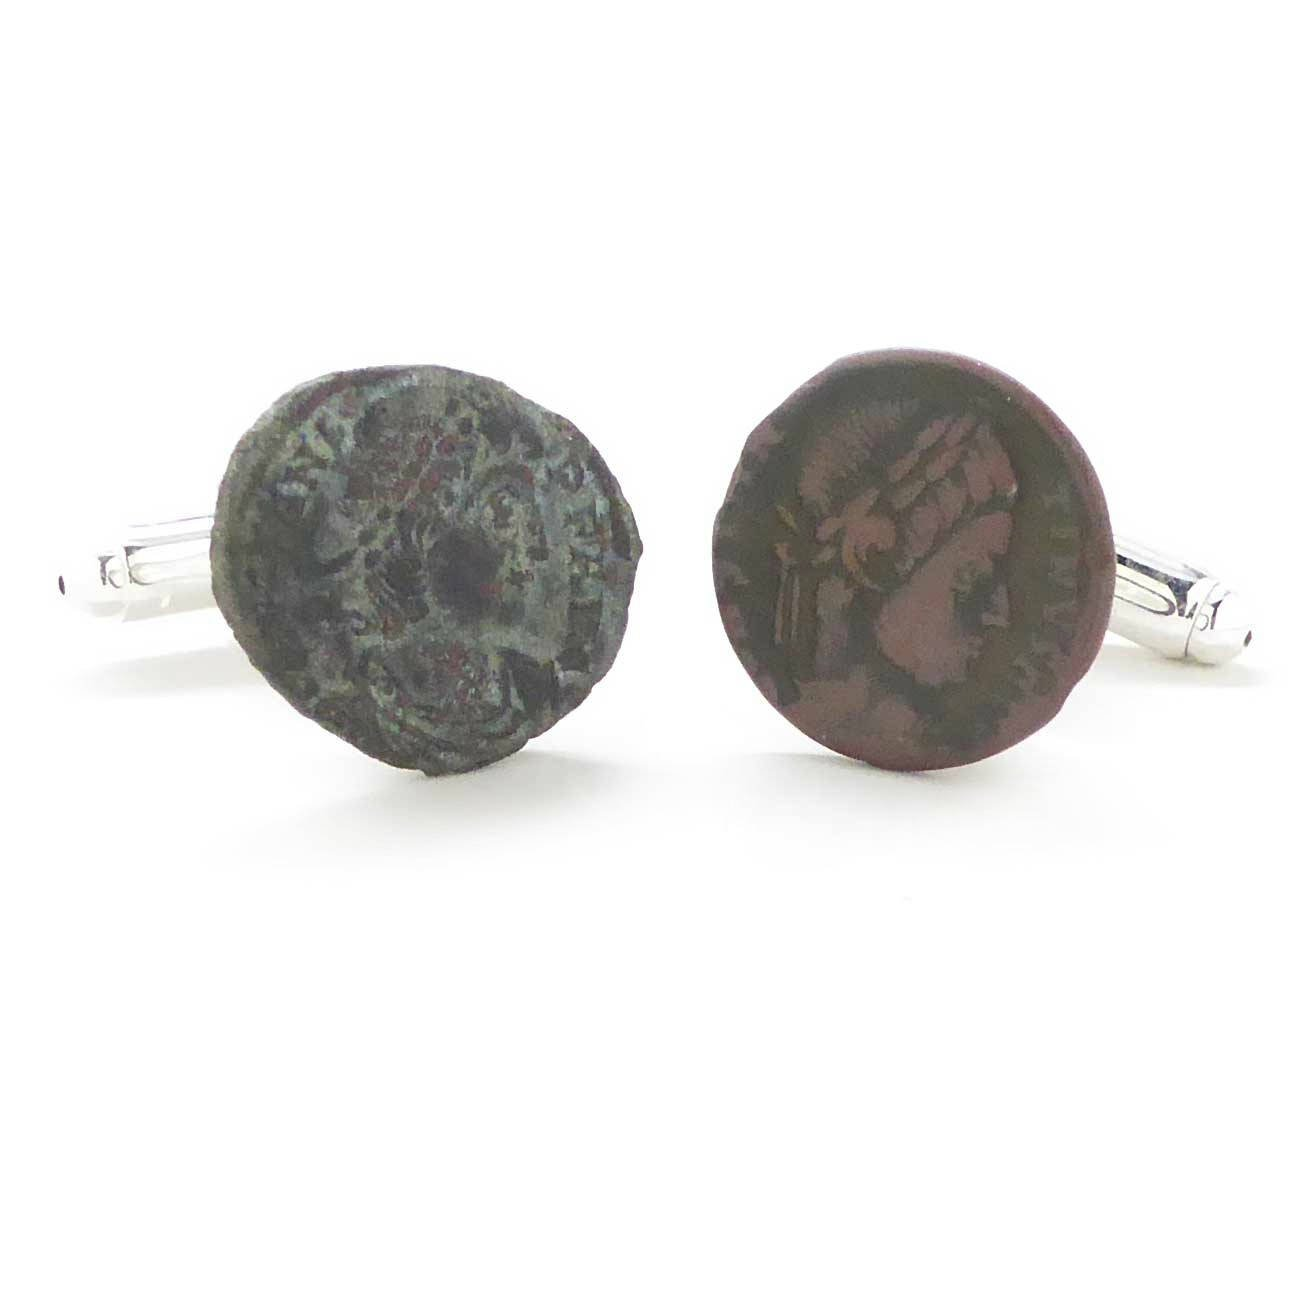 Roman Coin Cufflinks Cuff Links Rome Italy Empire Roma Emperor Authentic Ancient Caesar Legion Army Soldier Historical by Marcos Villa